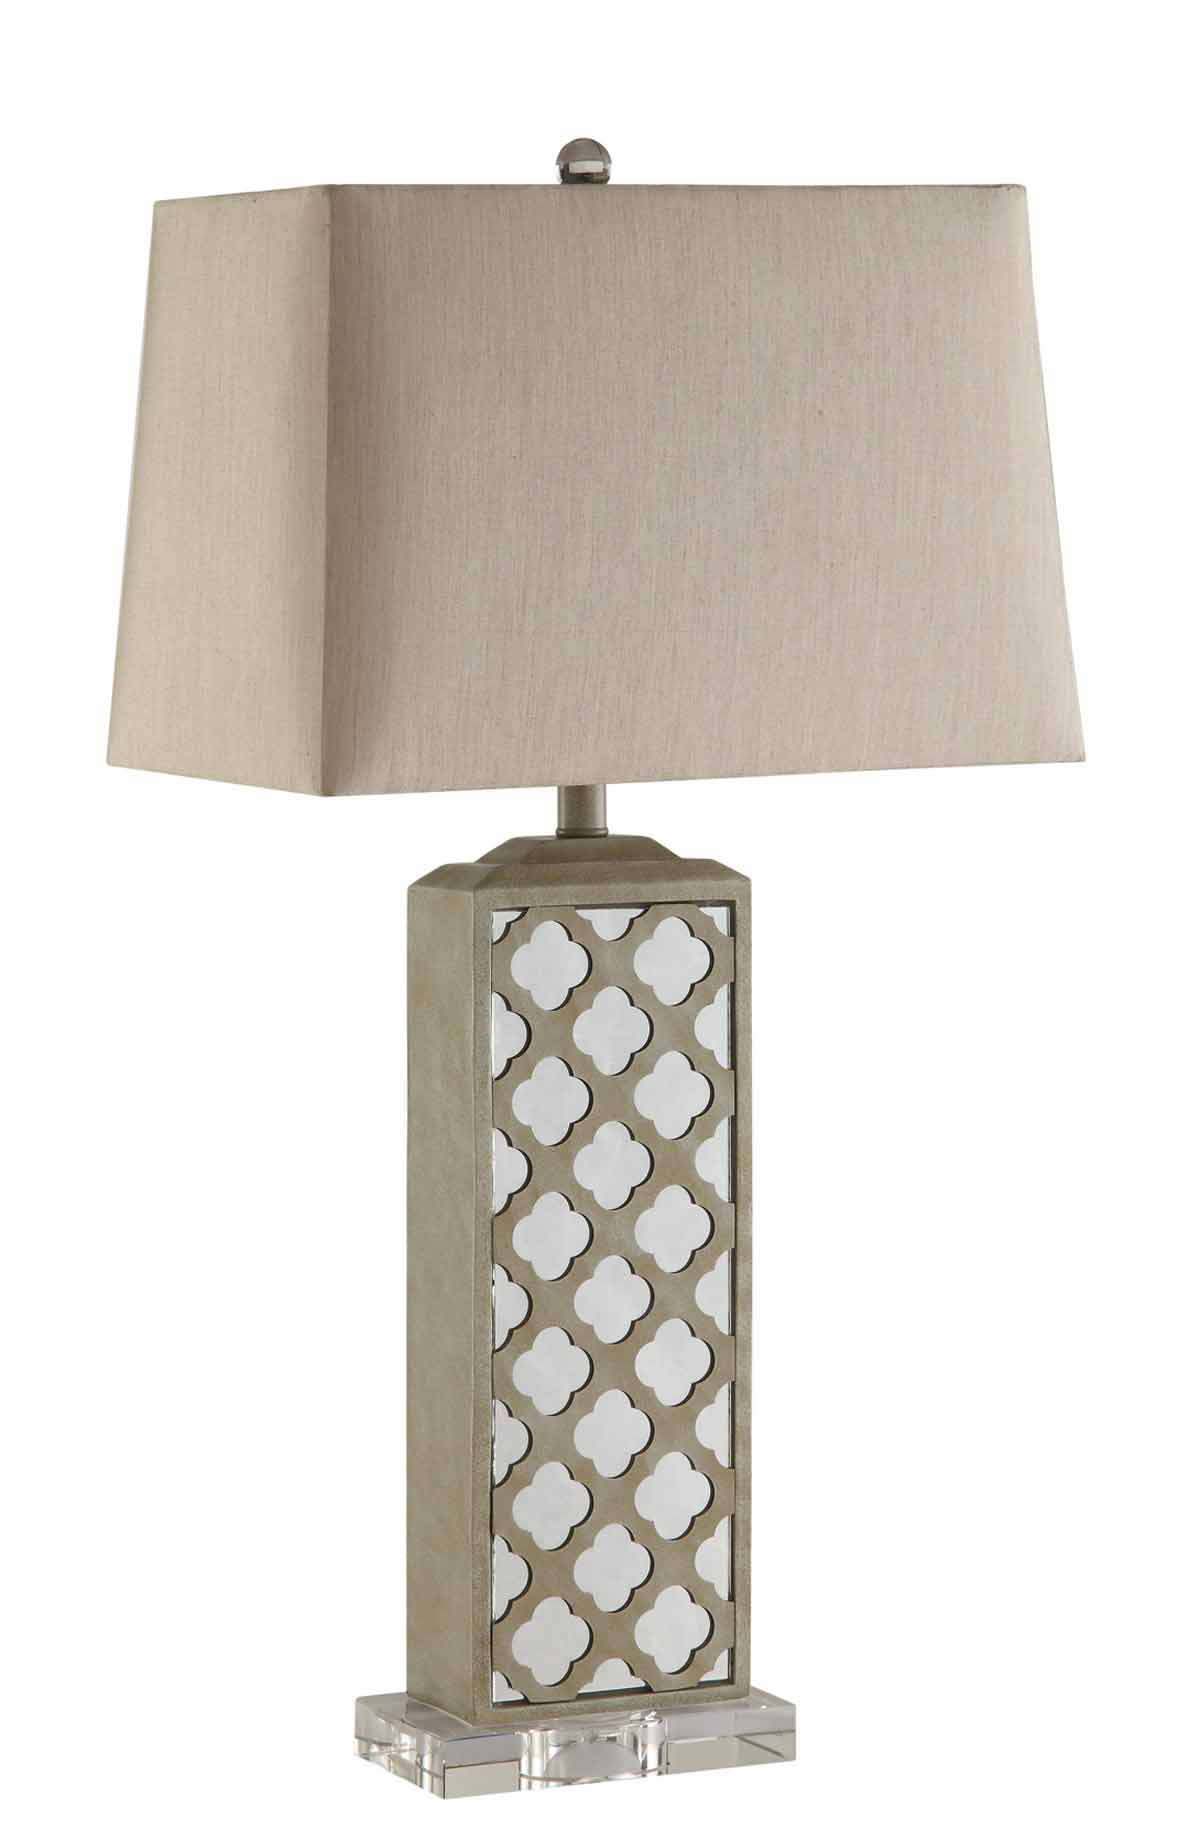 Coaster 901298 Table Lamp - Antique Ivory